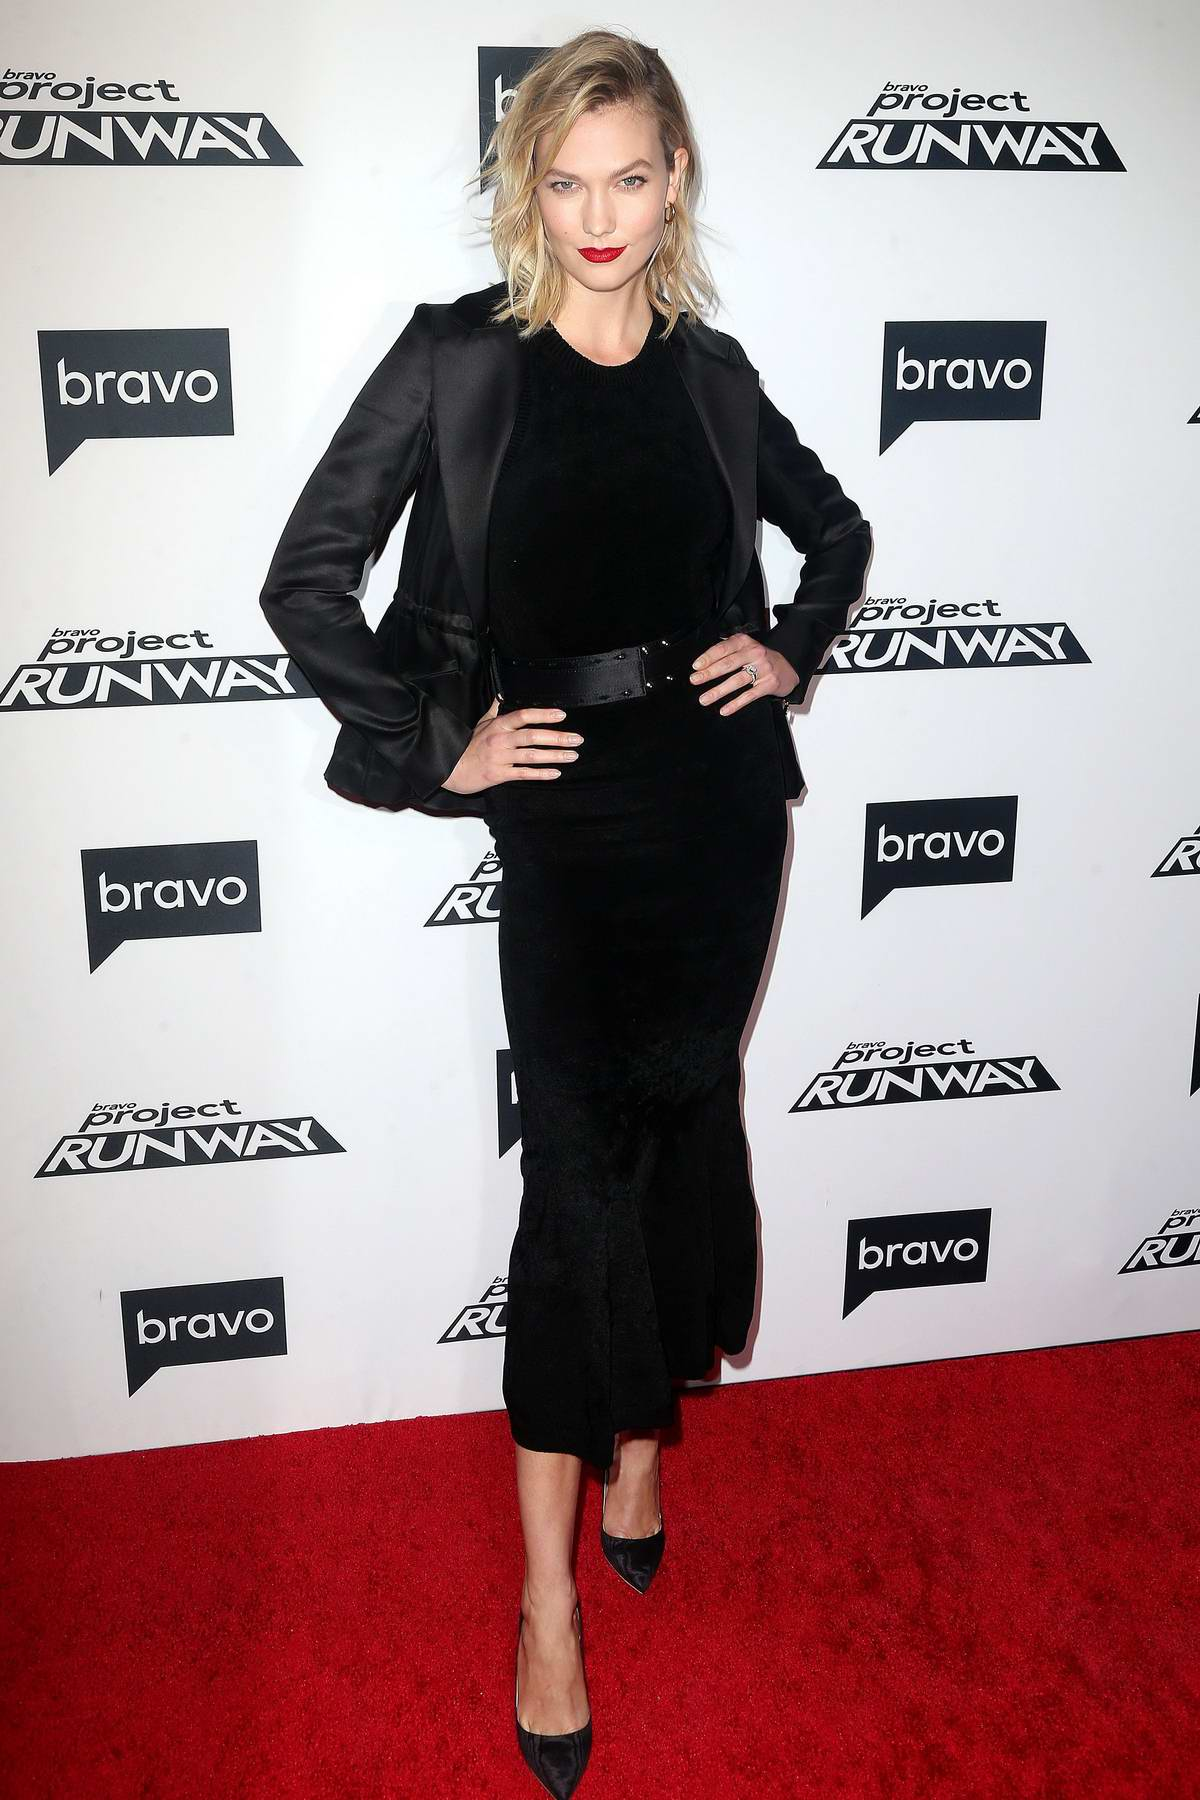 Karlie Kloss attends 'Project Runway' TV show premiere in New York City